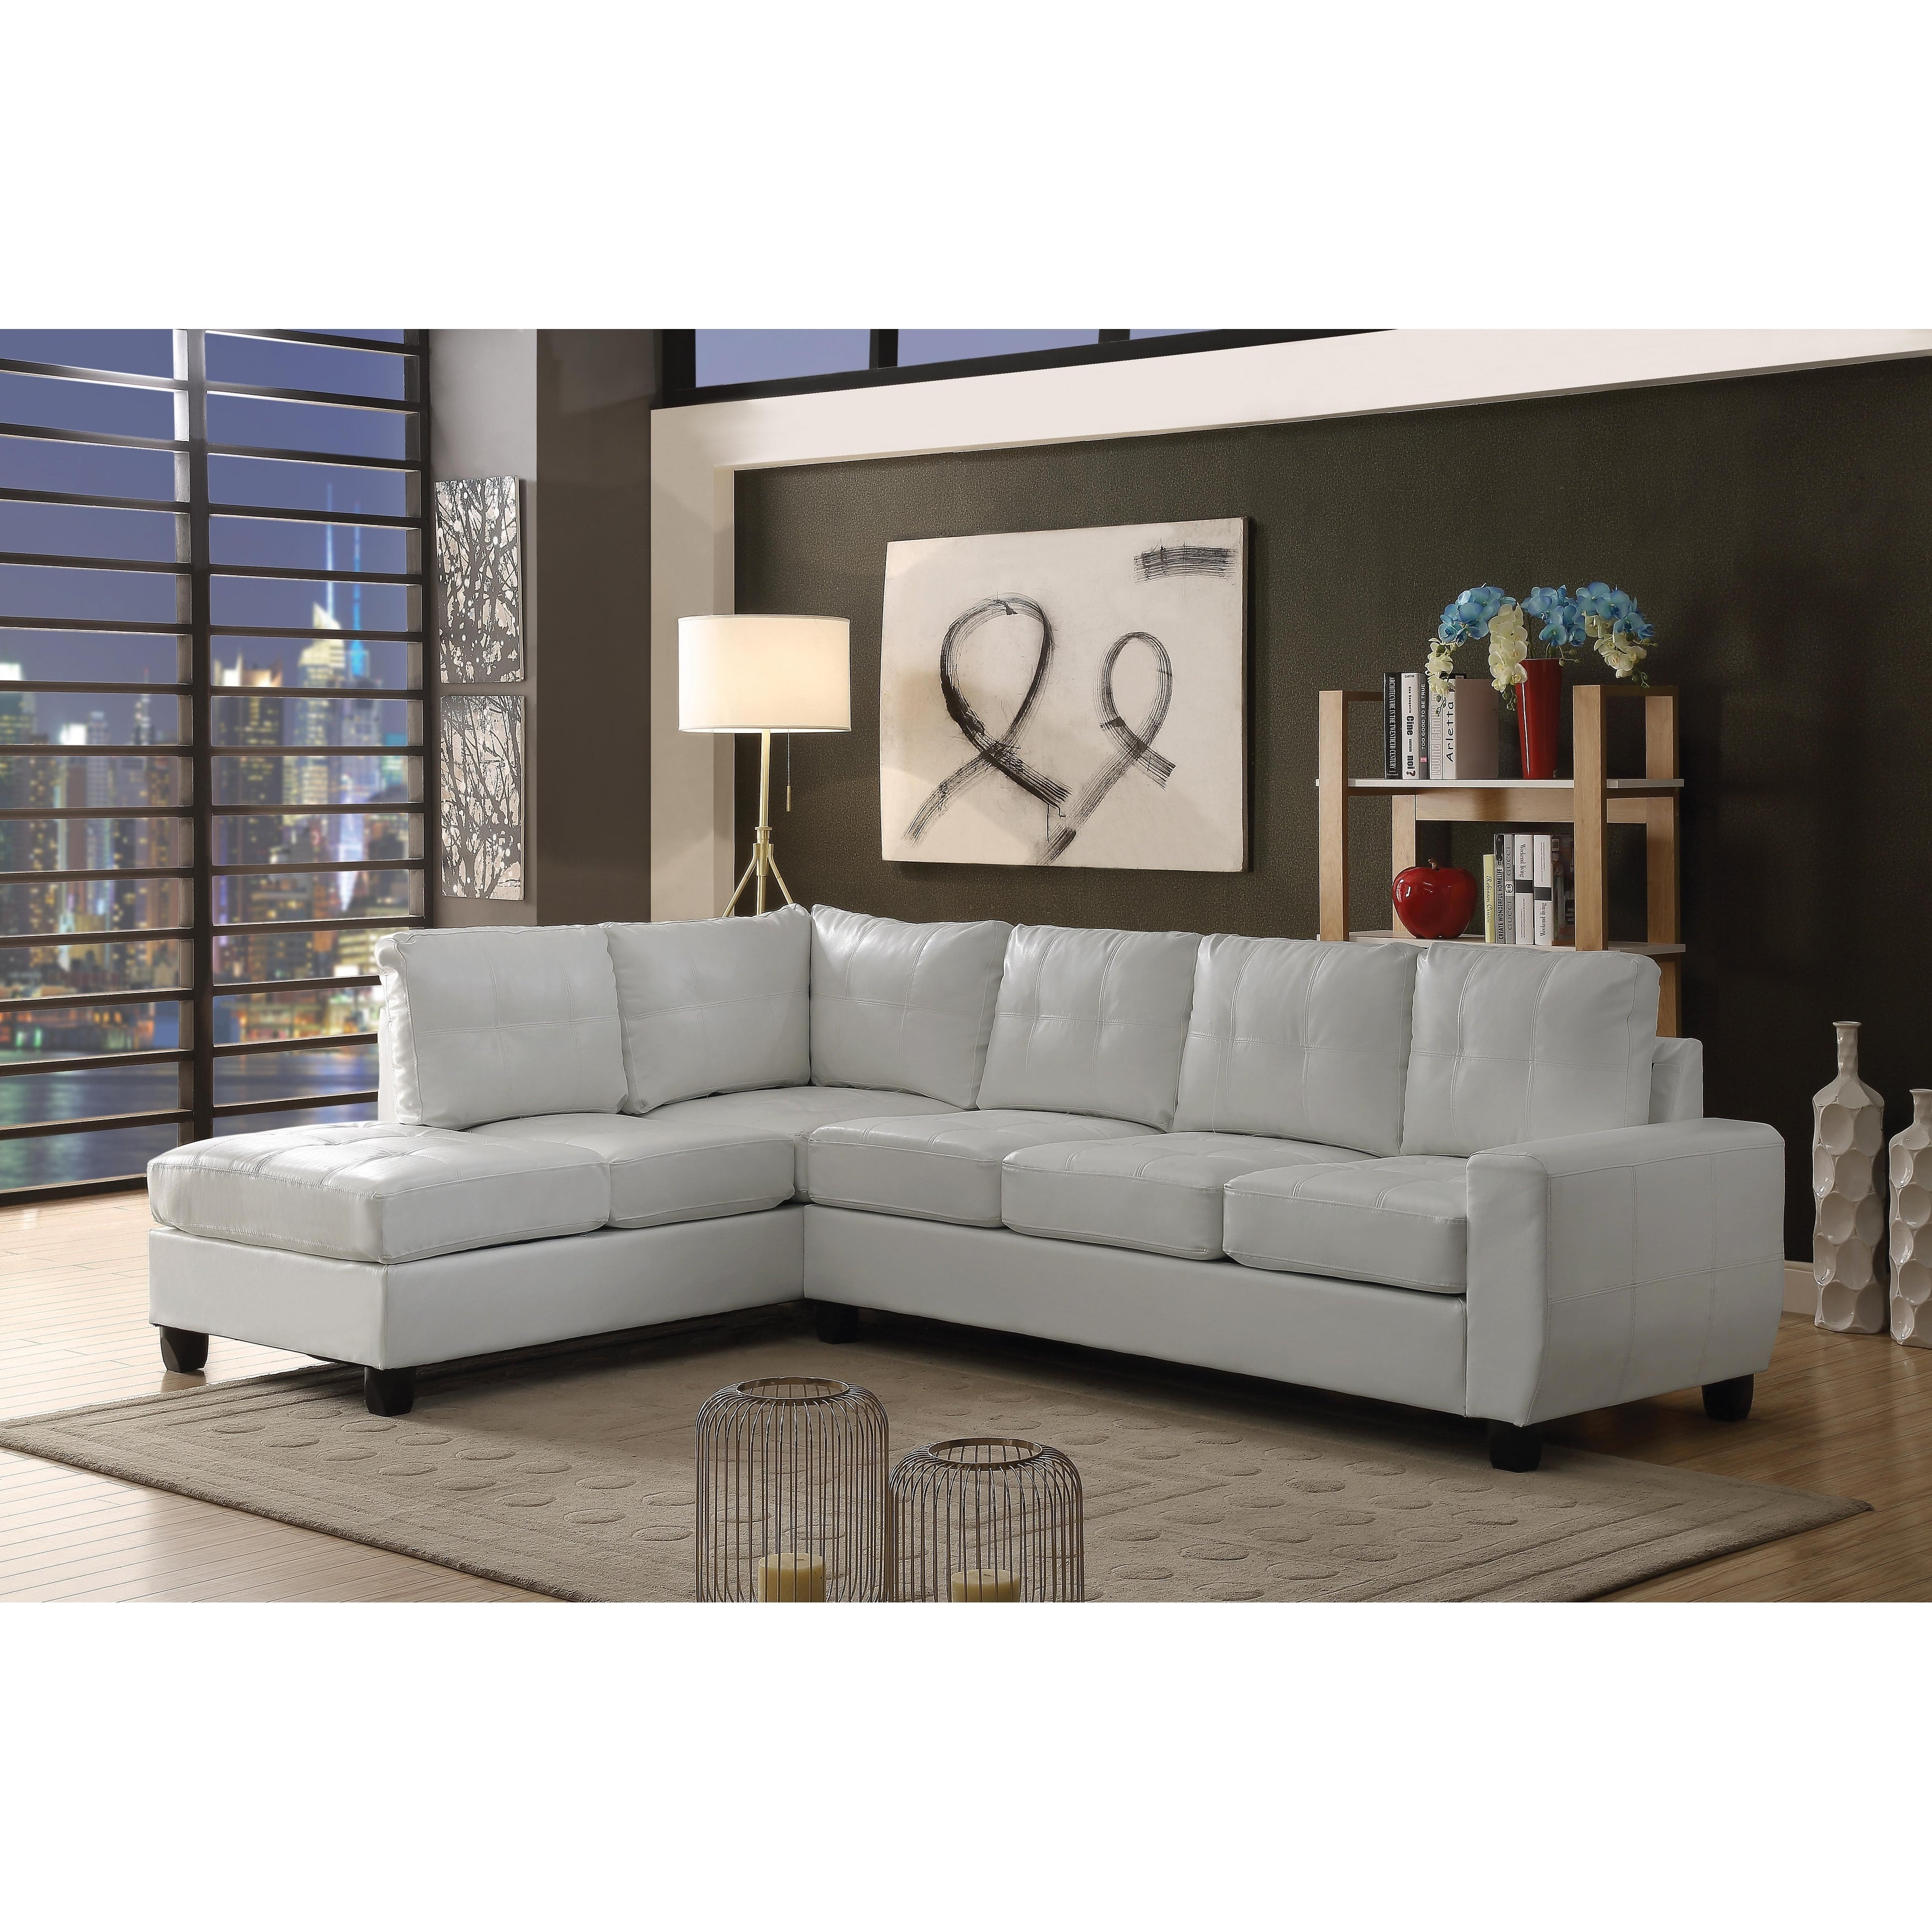 Lyke Home Henry Contemporary Bonded Leather Sectional (Ch..  sc 1 st  Nextag & Contemporary leather recliner sofa design | Sofas | Compare Prices ... islam-shia.org